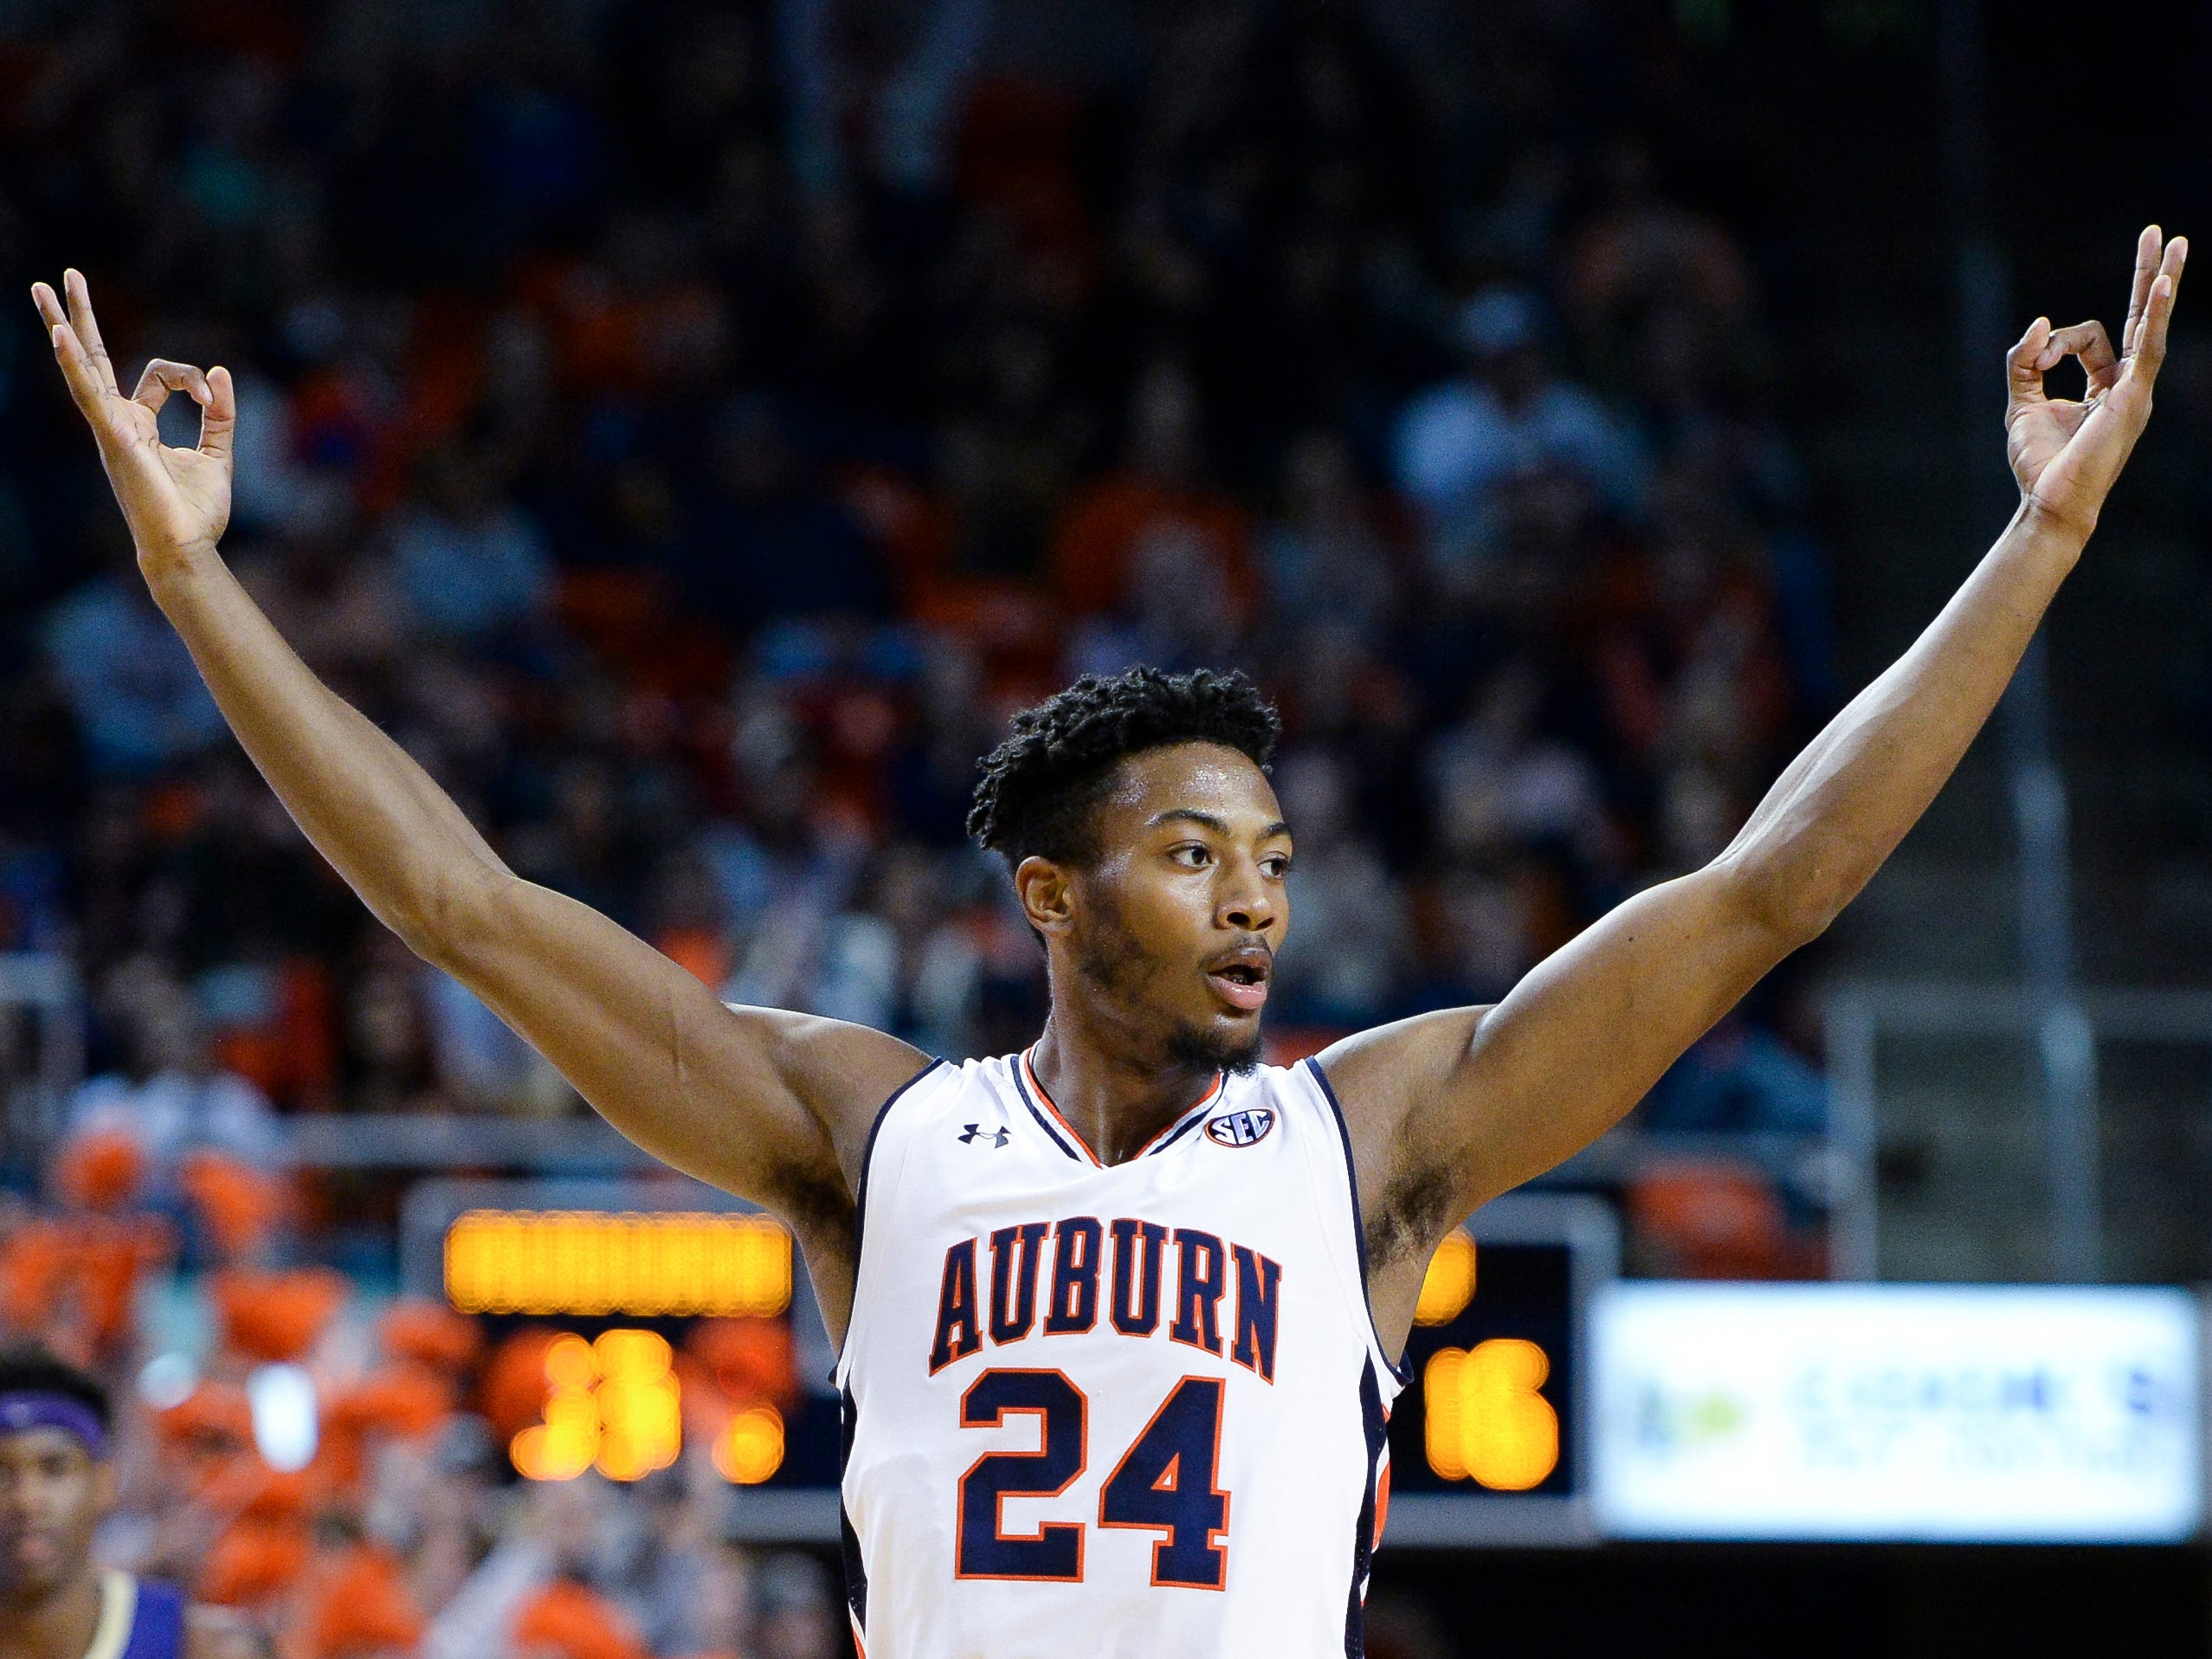 Auburn forward Anfernee McLemore (24) celebrates after scoring against Washington at Auburn Arena on Nov. 9, 2018, in Auburn, Ala.